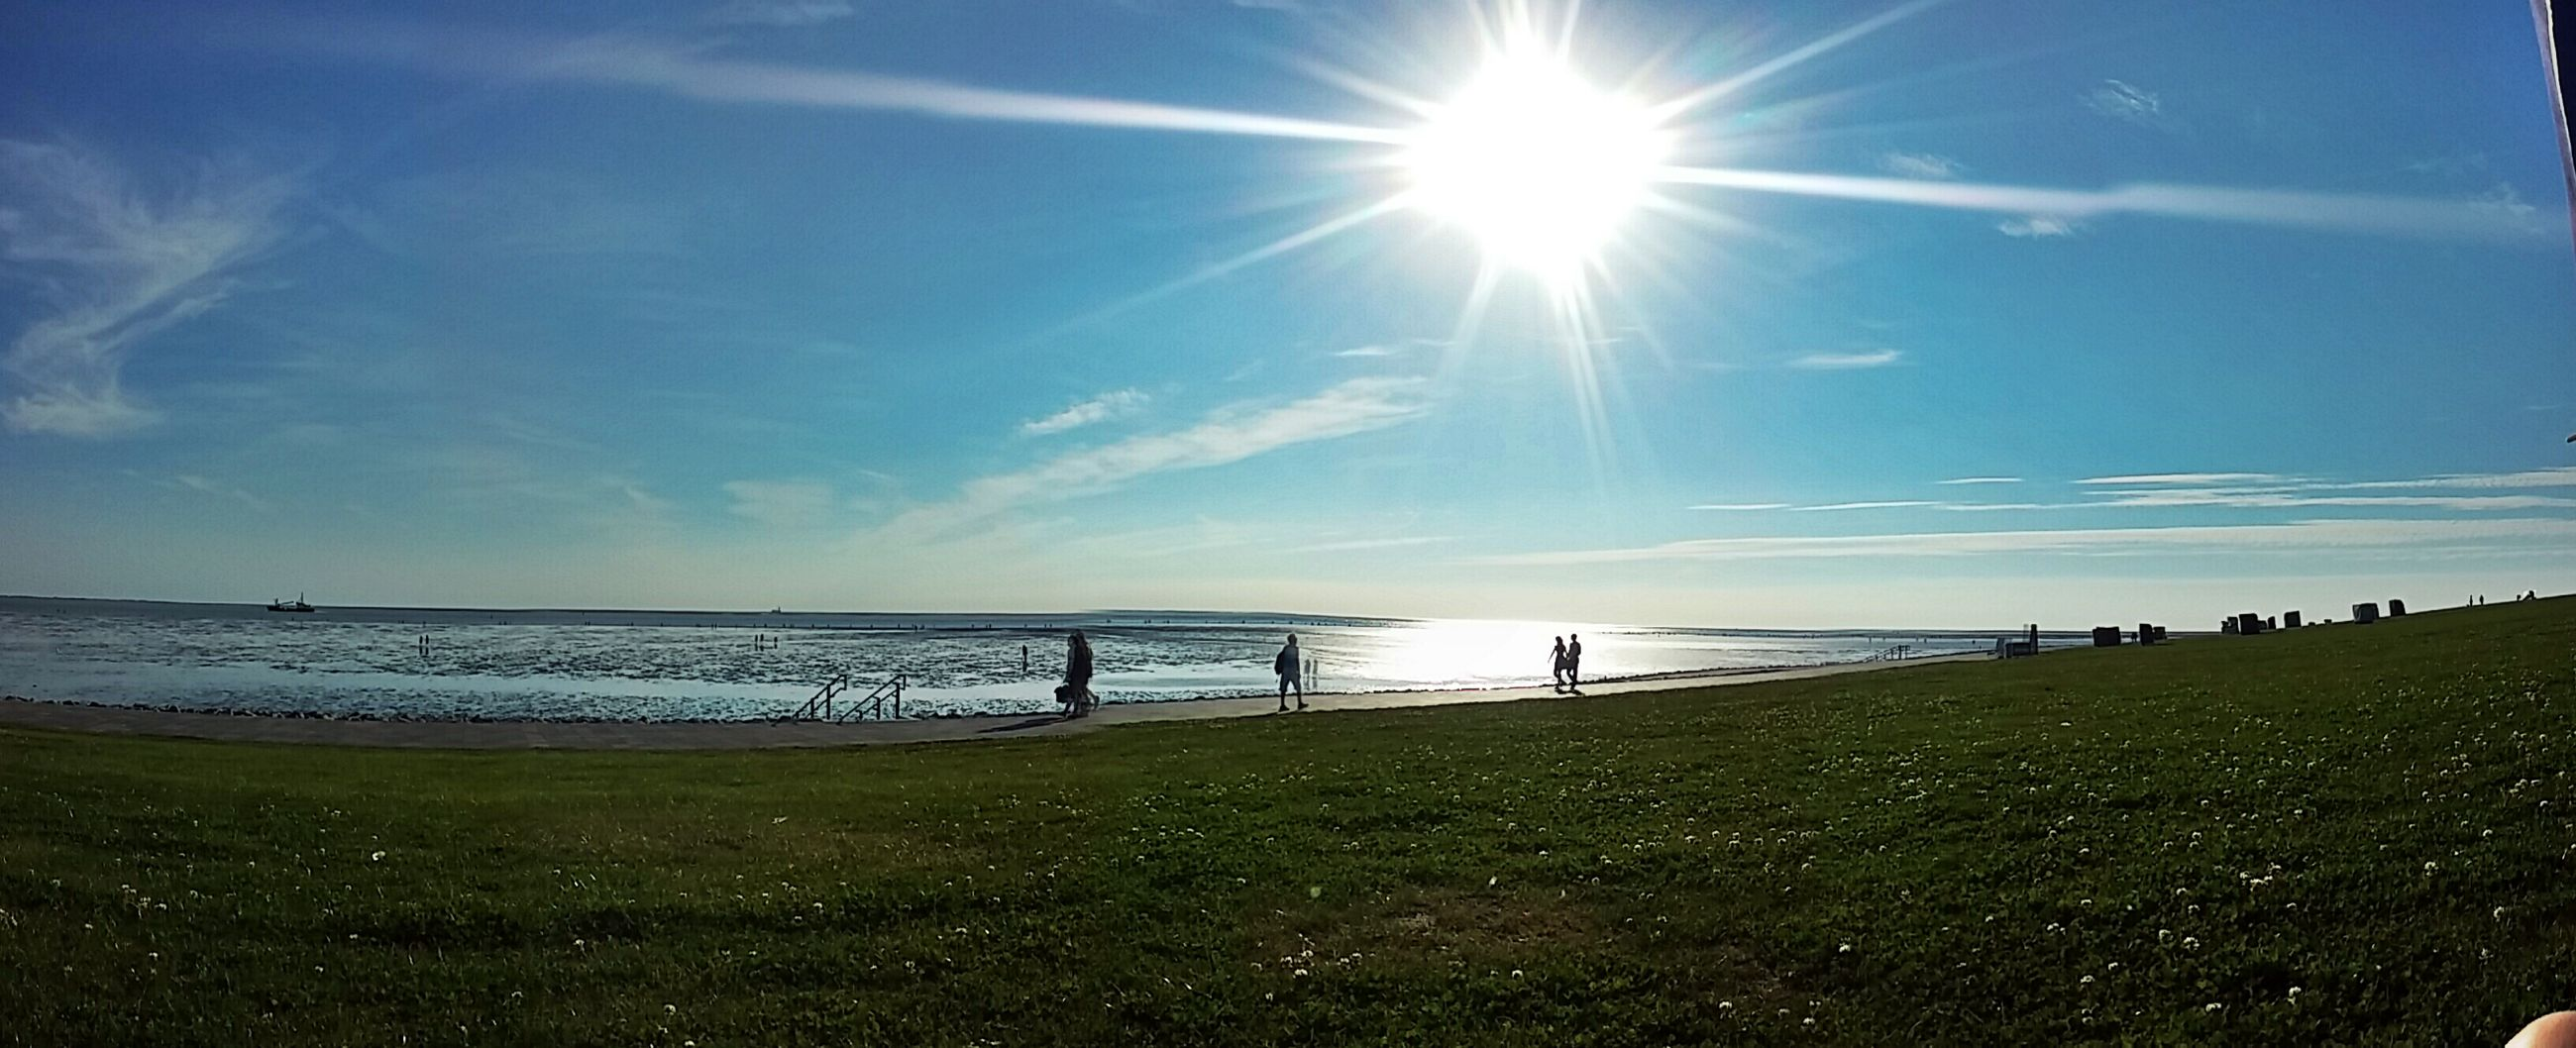 water, sun, tranquil scene, sunlight, grass, sea, horizon over water, beach, tranquility, scenics, tourism, sunbeam, vacations, sky, beauty in nature, sunny, day, nature, travel destinations, non-urban scene, blue, lens flare, outdoors, green color, bright